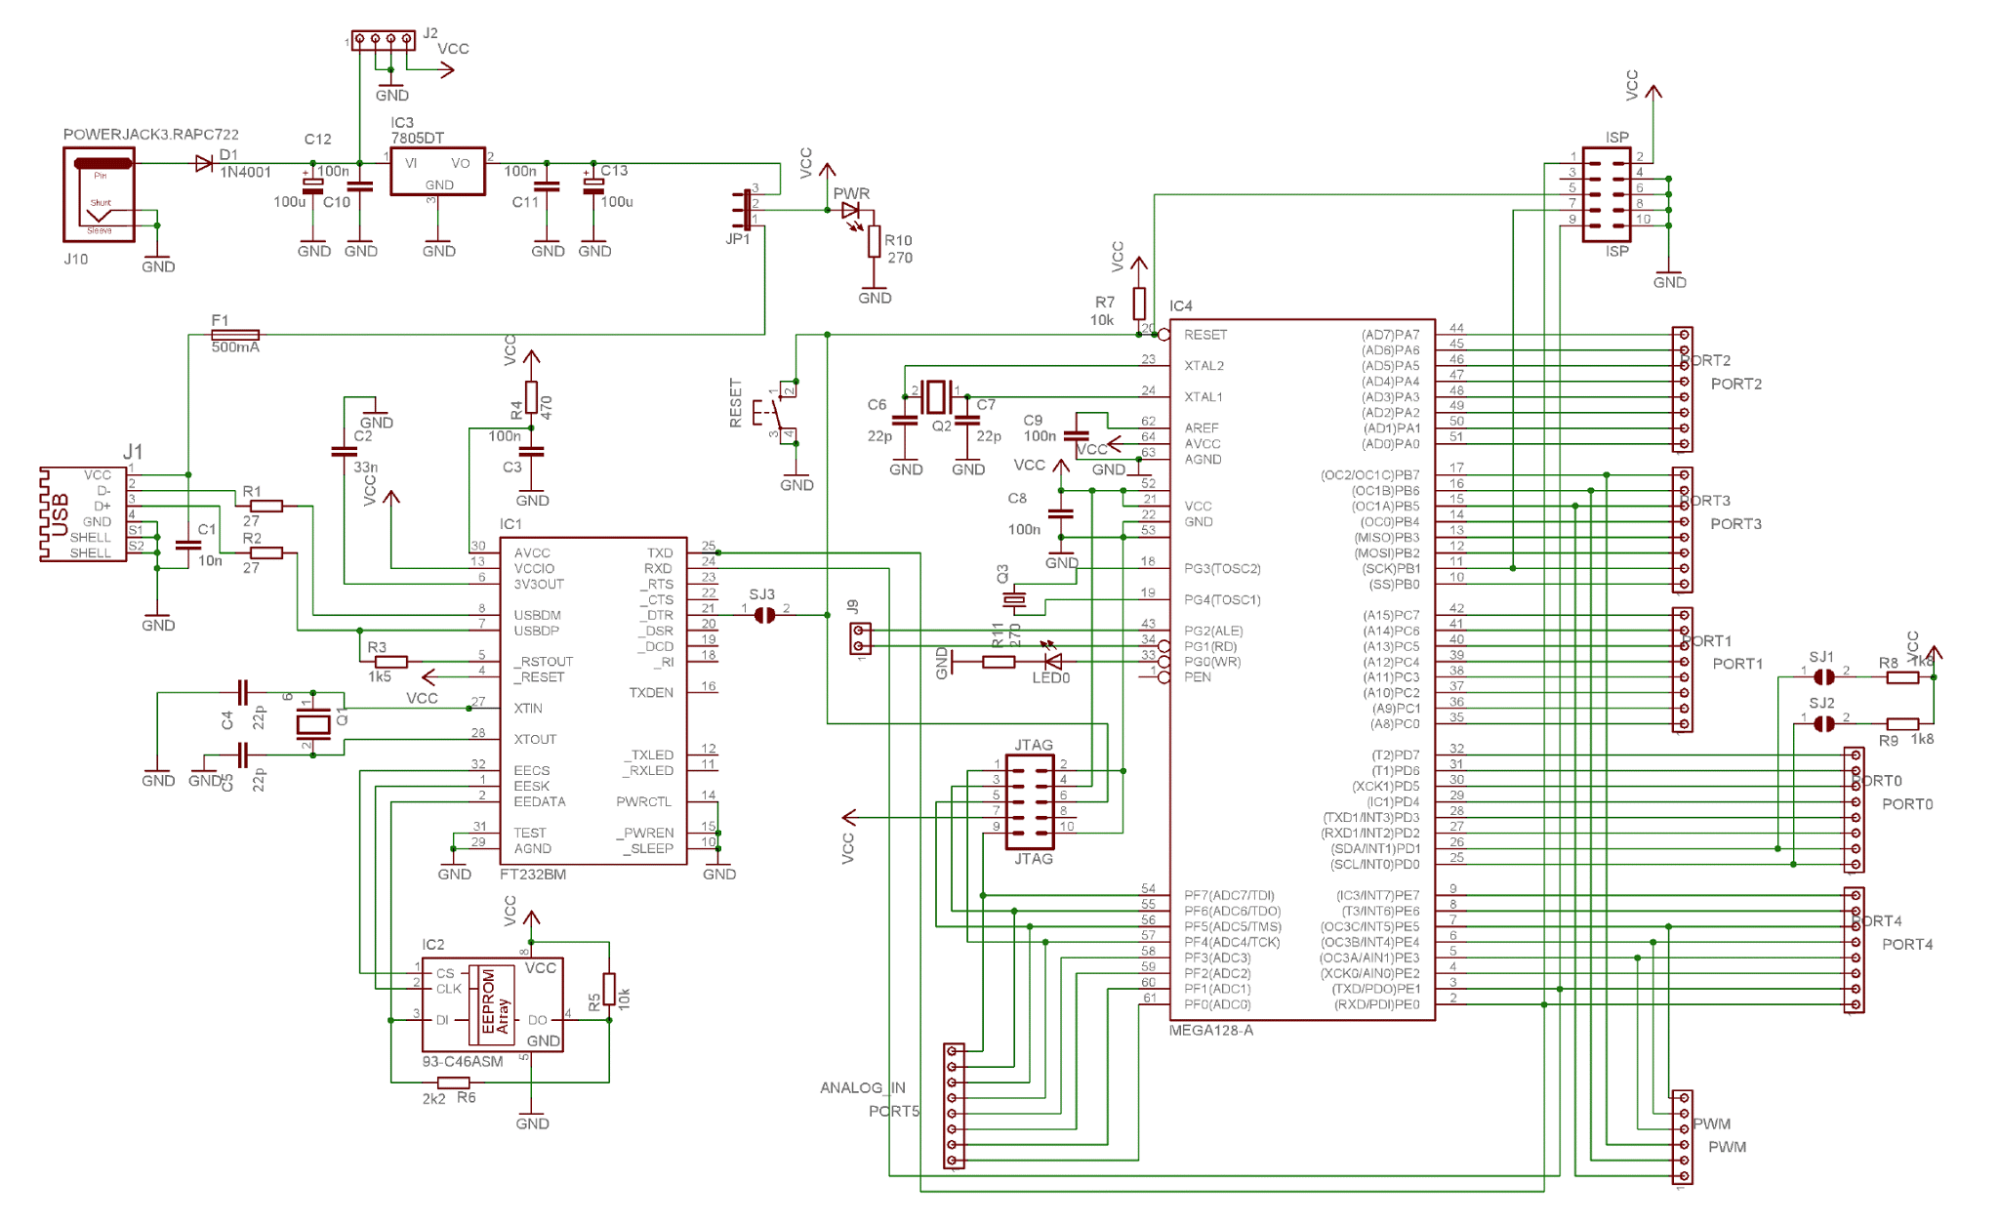 Wiring schematic the untold history of arduino Cal Spa Wiring Diagram at fashall.co